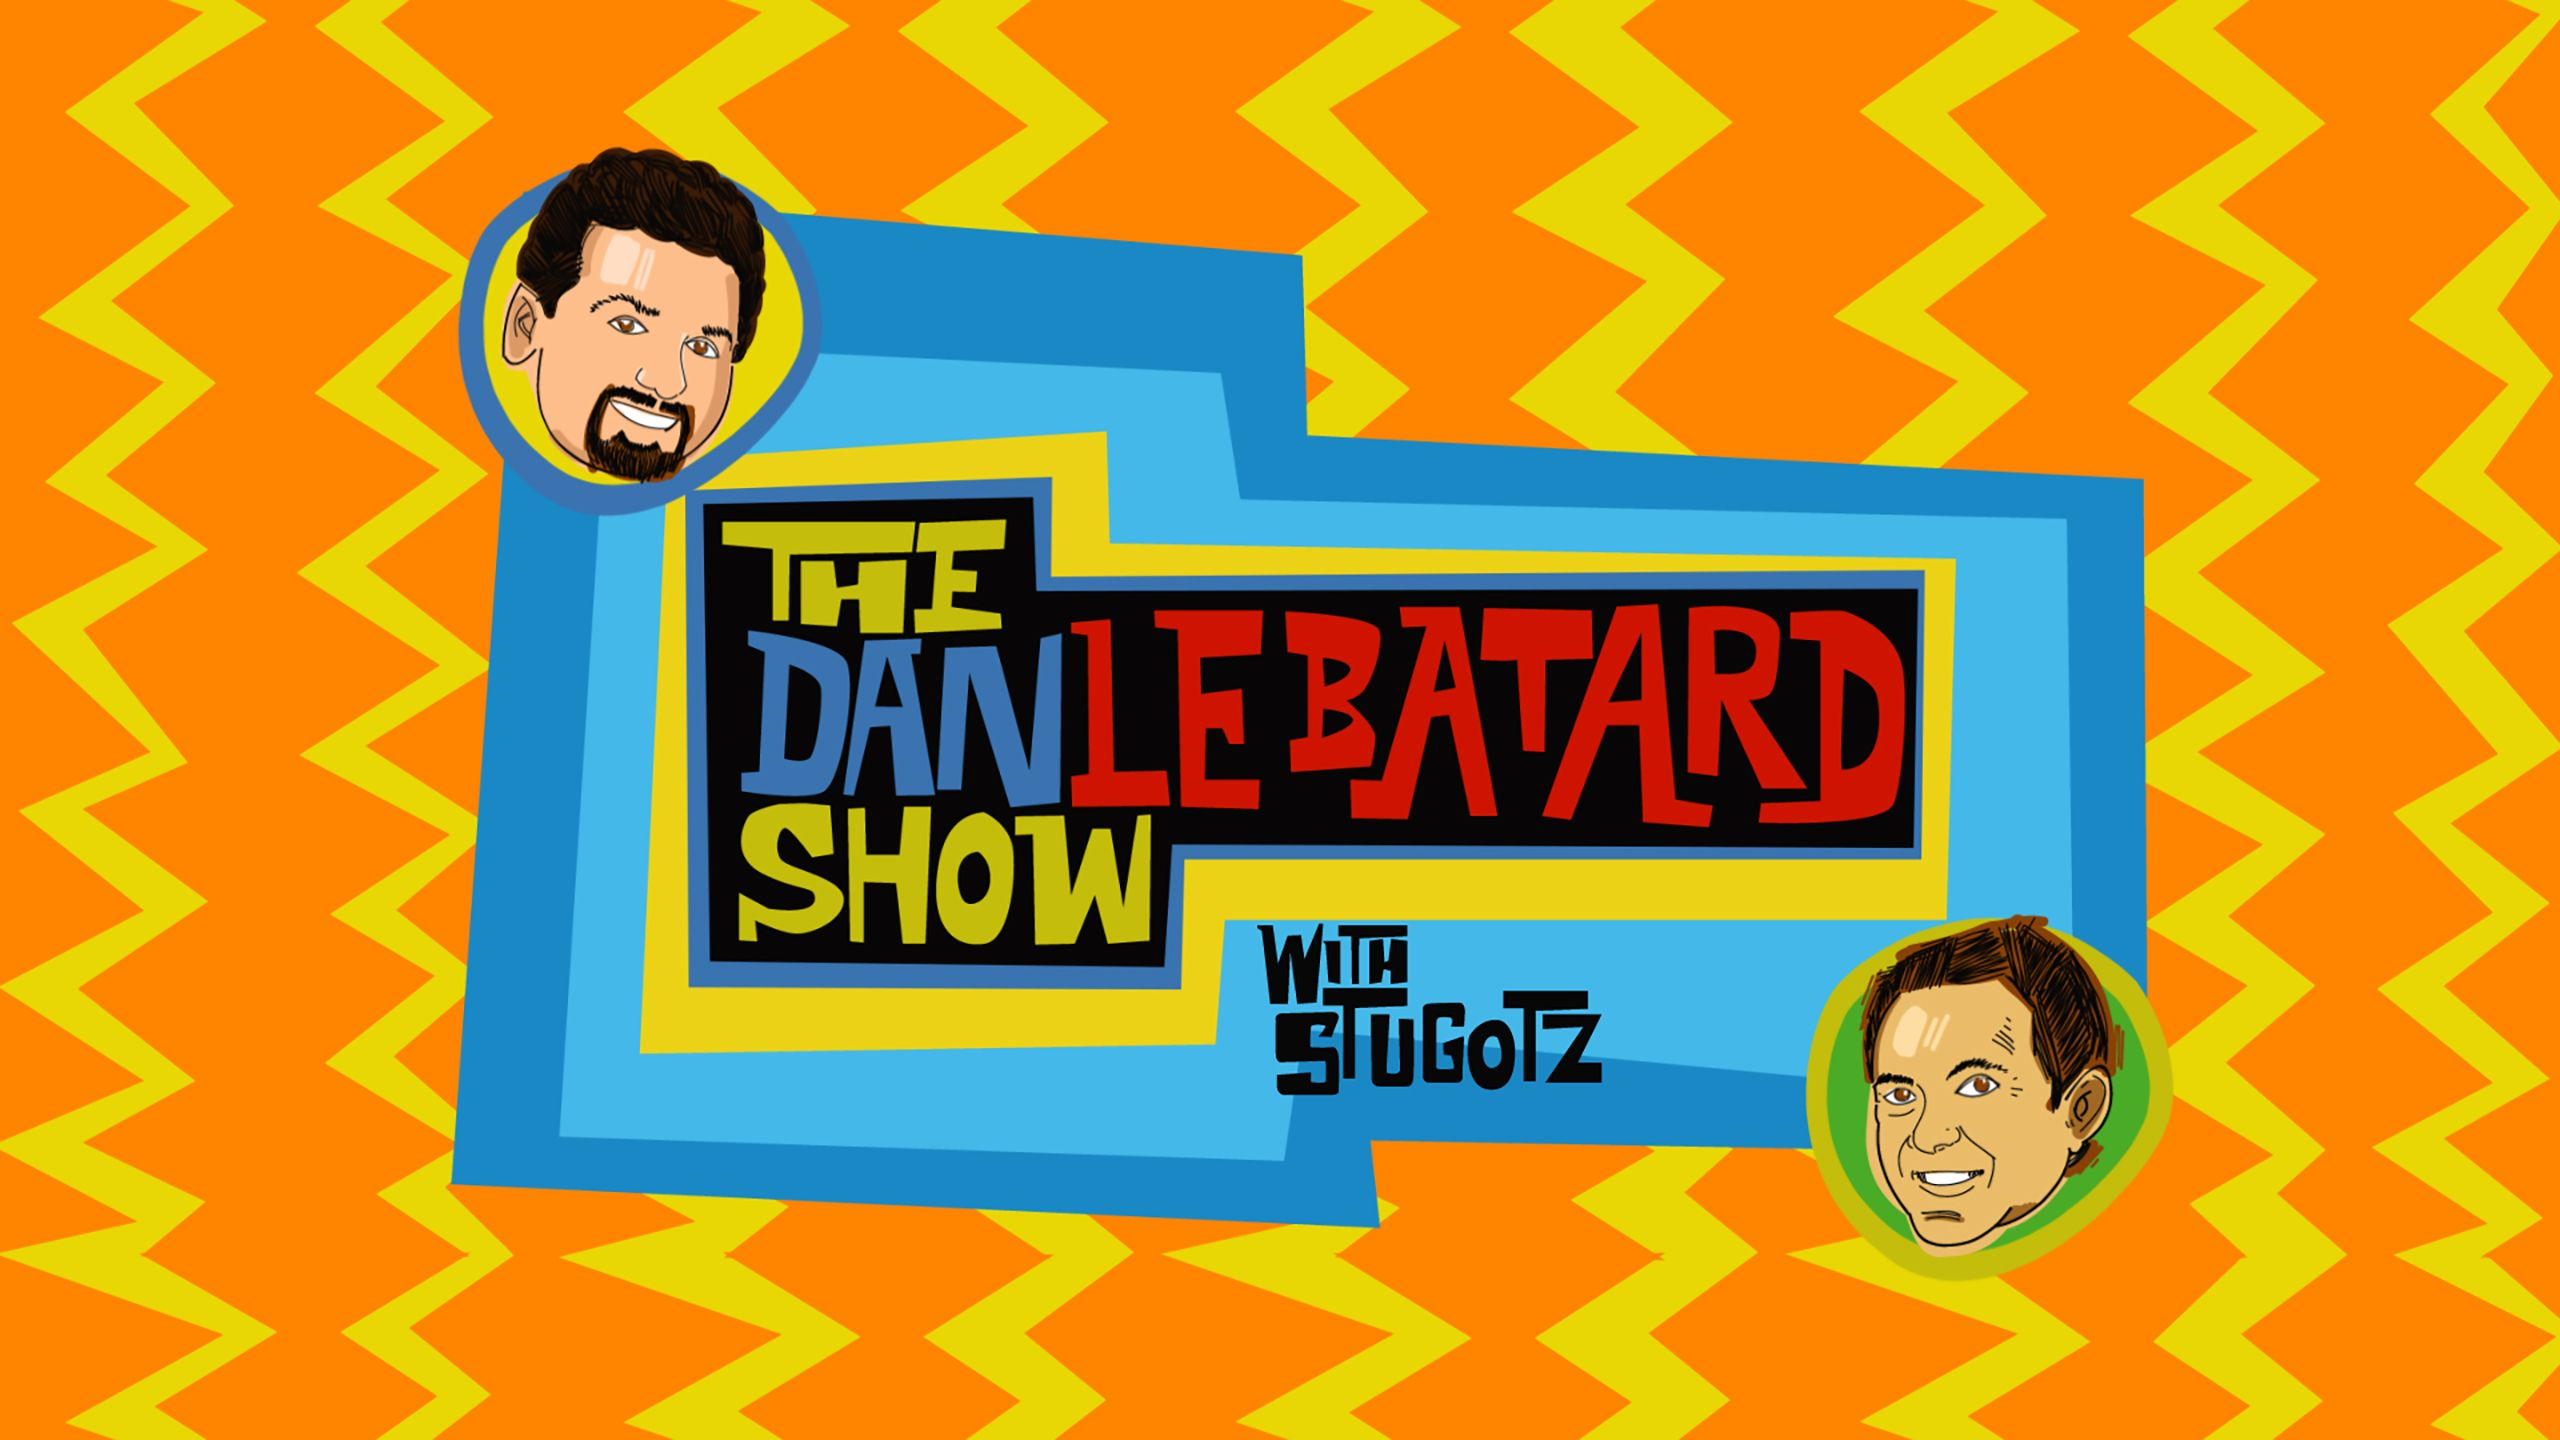 Thu, 10/19 - The Dan Le Batard Show with Stugotz Presented by Progressive